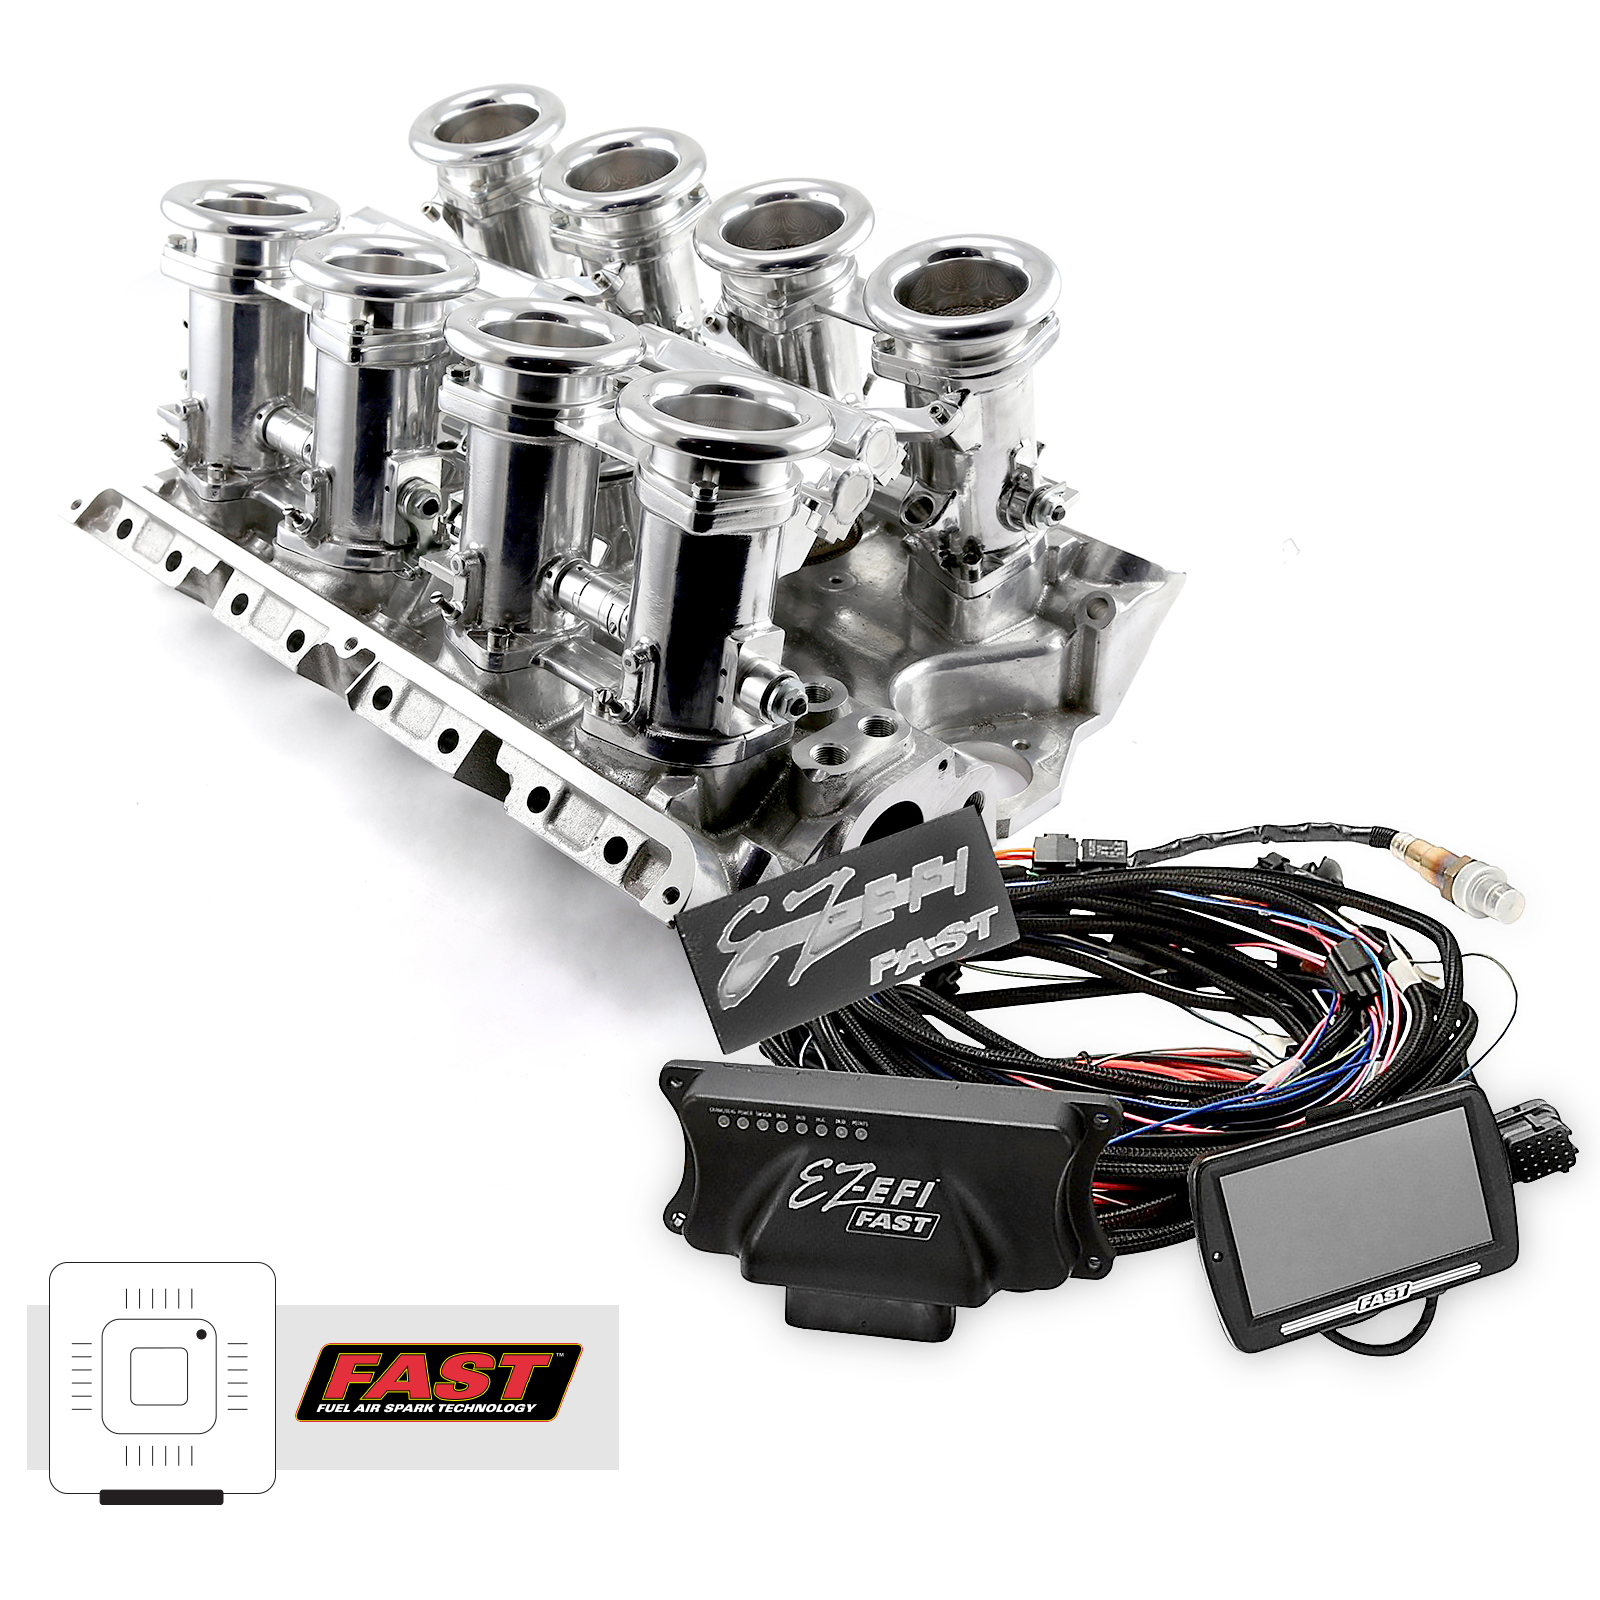 Ford FE 390 427 Downdraft + FAST EZ-EFI 2.0 Fuel Injection System - Polished